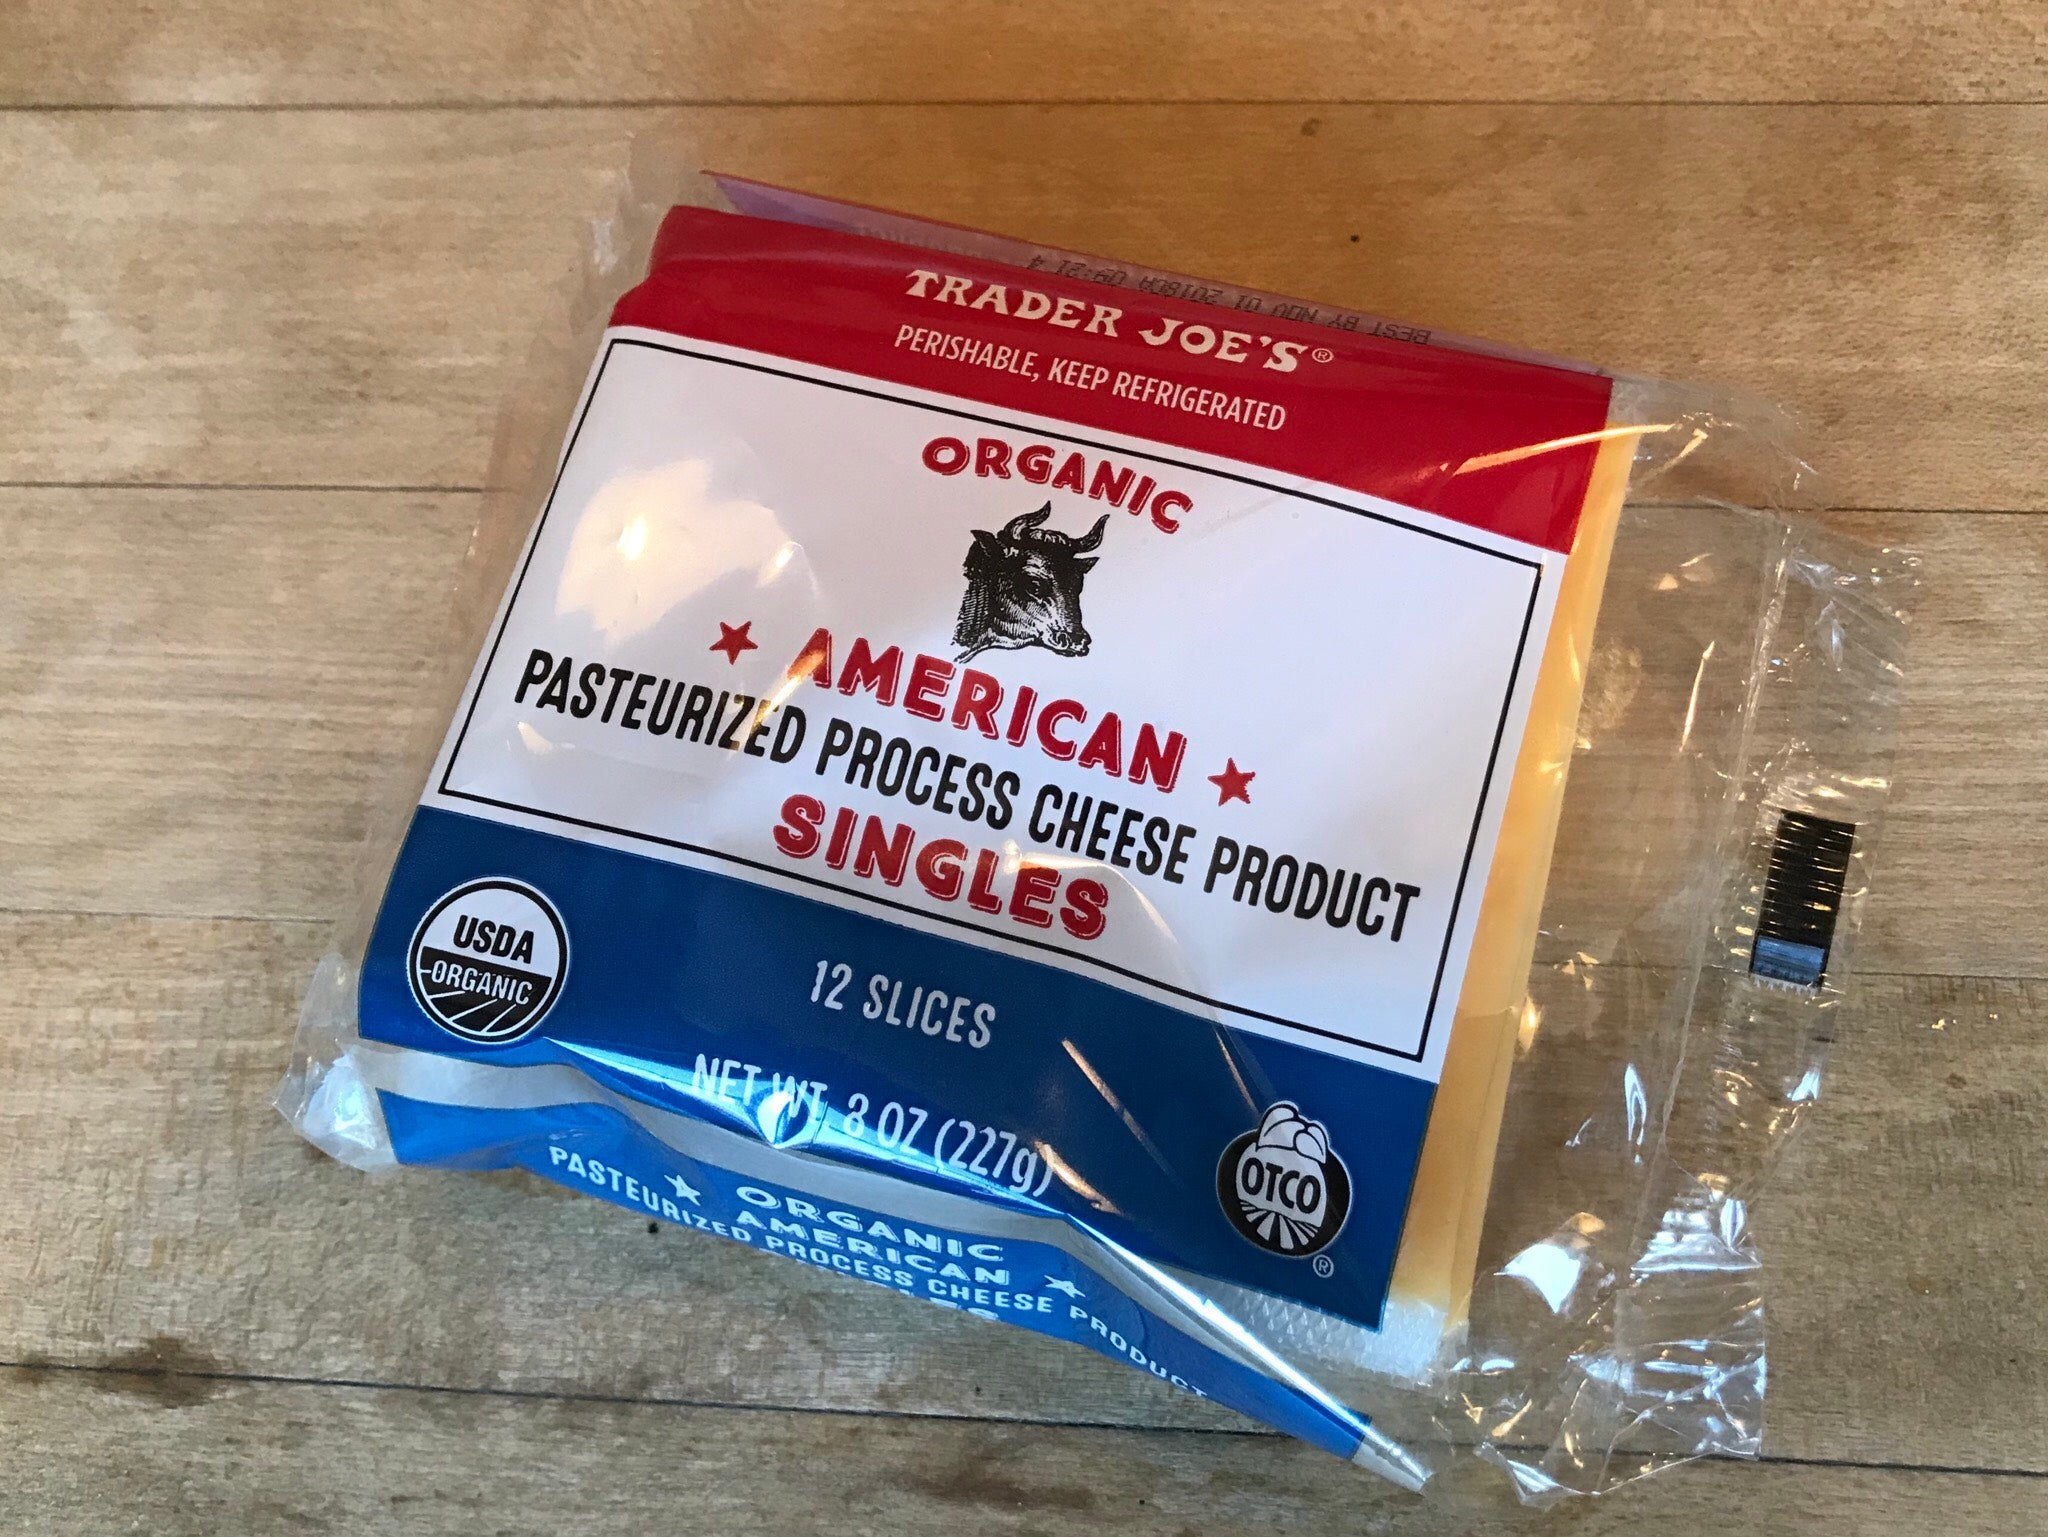 American pasteurized process cheese product.